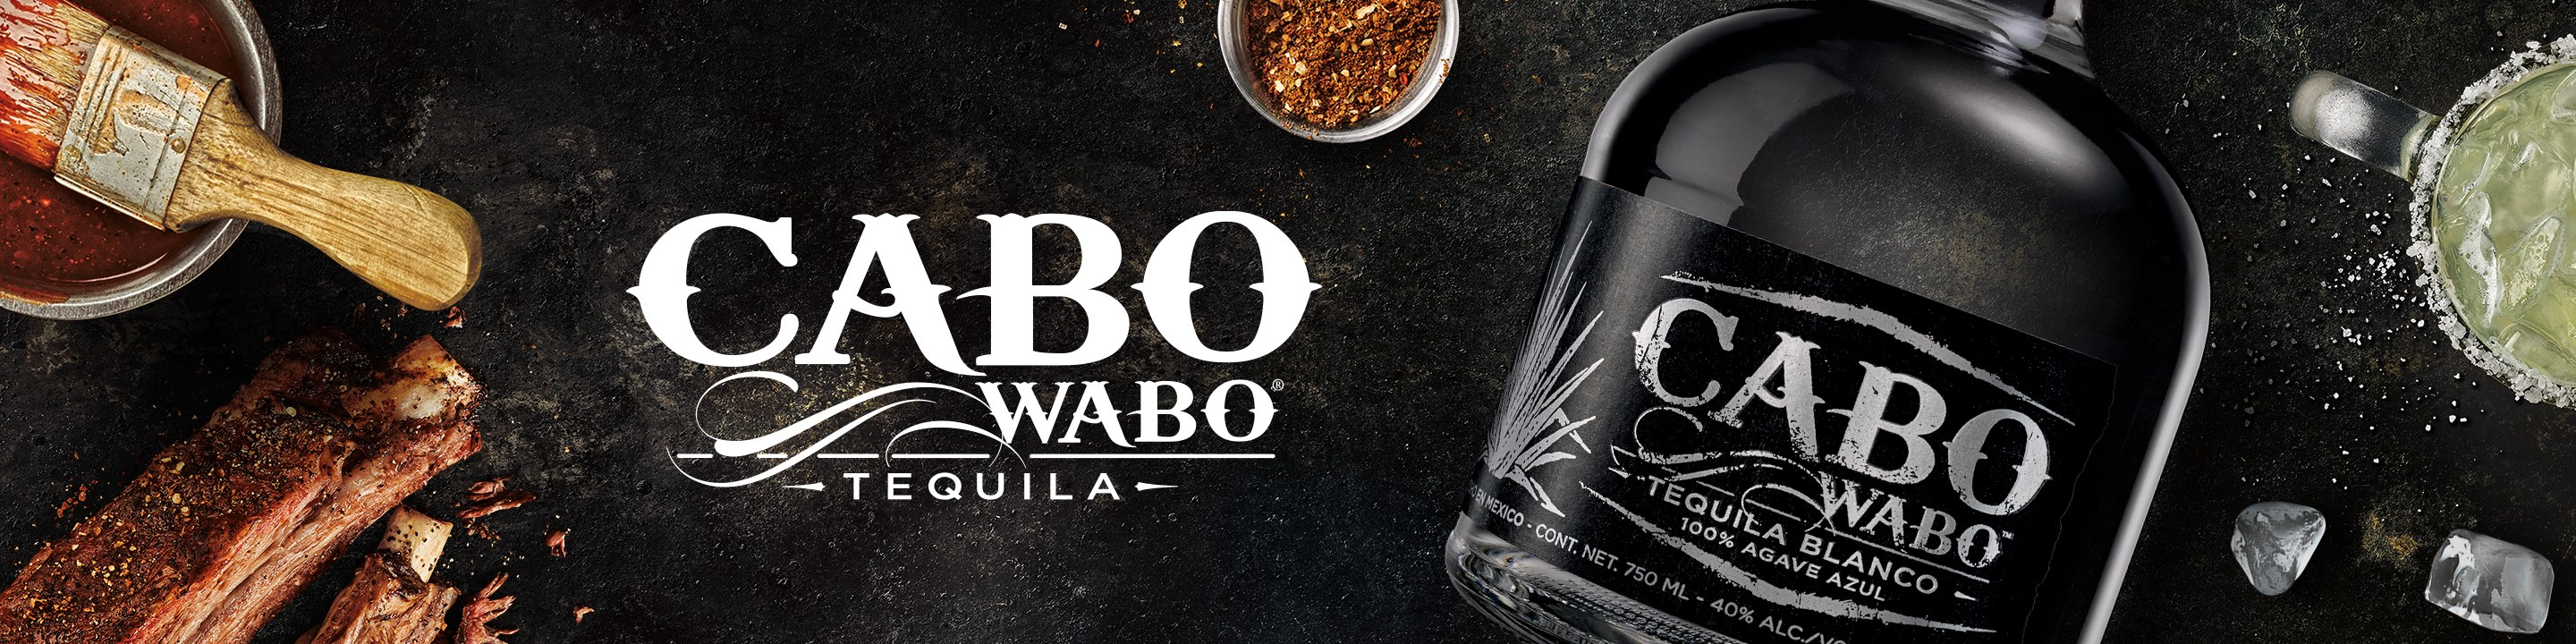 """The award winning Cabo Wabo Tequila shines with smooth, authentic flavour and unique personality; it is created with respect of the long-standing tequila traditions that made it the drink of choice of the wise and venerated mystics of Mexico. No shortcuts are taken in making Cabo Wabo, unlike other brands which legally mix up to 49% of fillers and still call their product """"tequila"""". Buy Cabo Wabo online now from nearby liquor stores via Minibar Delivery."""